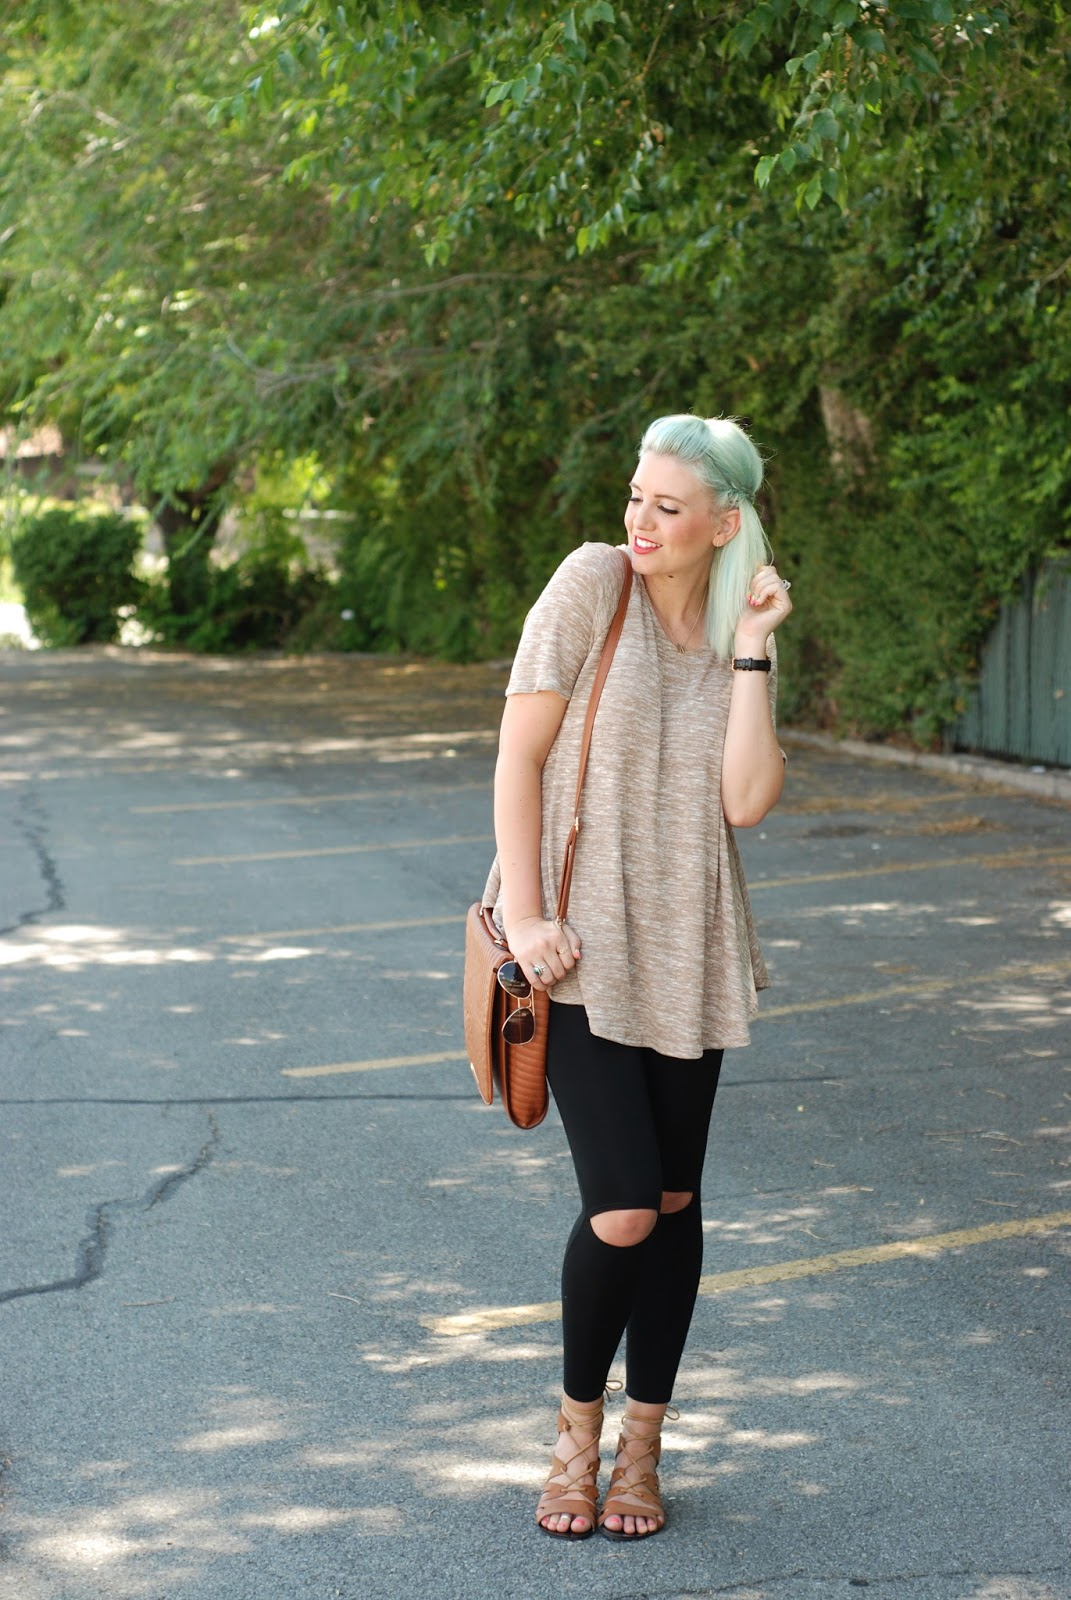 Carase Tunic, Fall Outfit, Lace Up Sandals